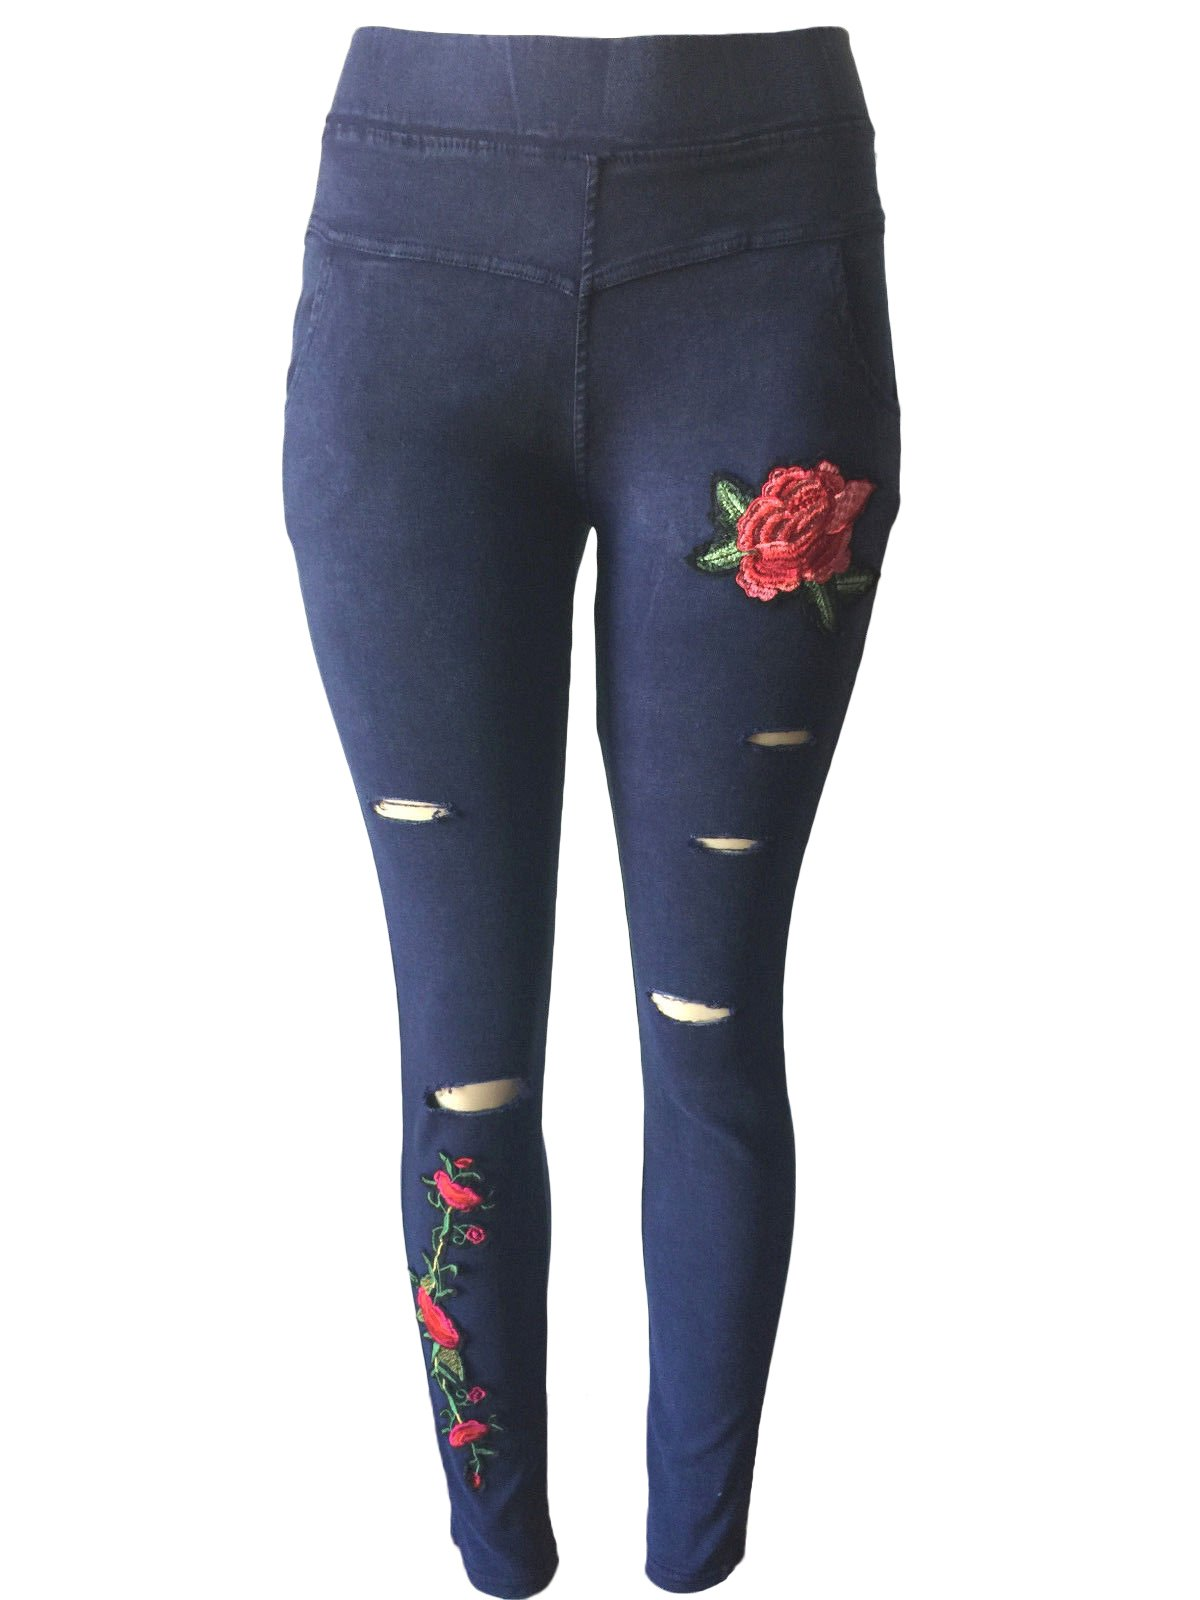 NY GOLDEN FASHION Women High Waist Floral Embroidered Ripped Jeans Jeggings Super Skinny Pants (L/XL, Navy)